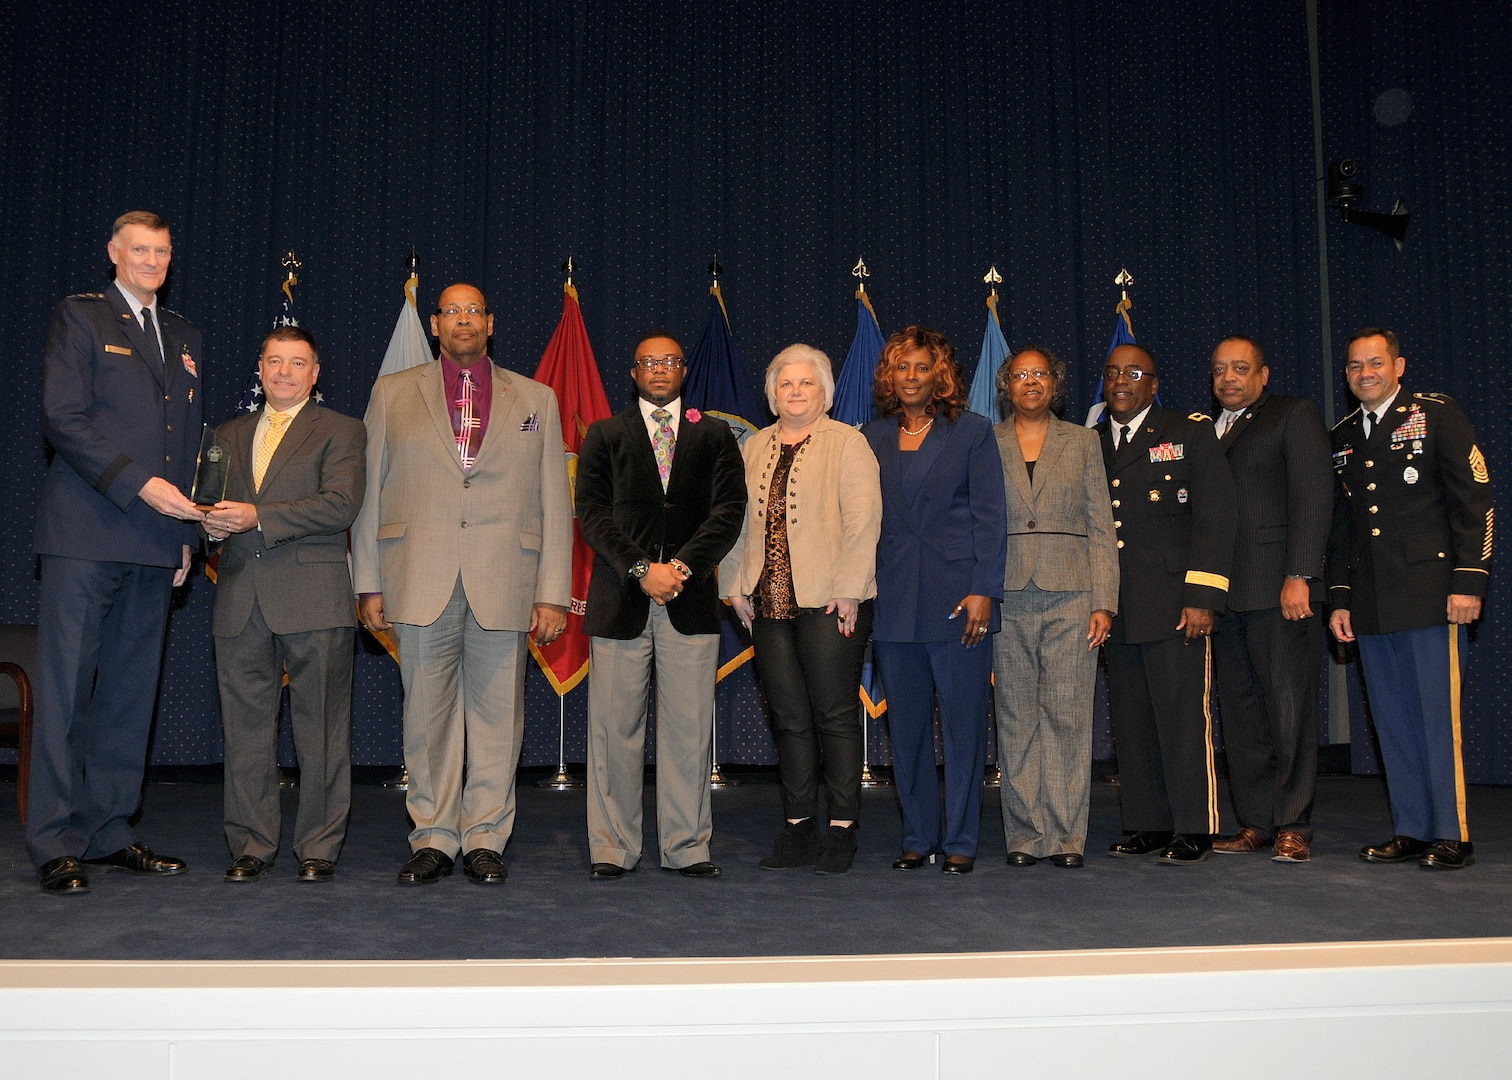 DLA director Air Force Lt. Gen. Andy Busch, left, presents the DLA Distribution Red River, Texas, Equal Employment Office team (left to right: Kirby Olson, Willie Houff, Kacy Harvey, Gina Edwards, Melba Golston and Jo Linda Warren) the Outstanding Achievement in EEO award at the 48th annual employee recognition ceremony Dec. 10.  Distribution's commander Army Brig. Gen. Richard Dix, third from right, DLA's equal employment opportunity director Ferdinand LeCompte, second from right, and DLA's Senior Enlisted Leader Army Command Sgt. Maj. Charles Tobin, right, were also on-hand to present the award.  (Photo by Teadora Mocanu)